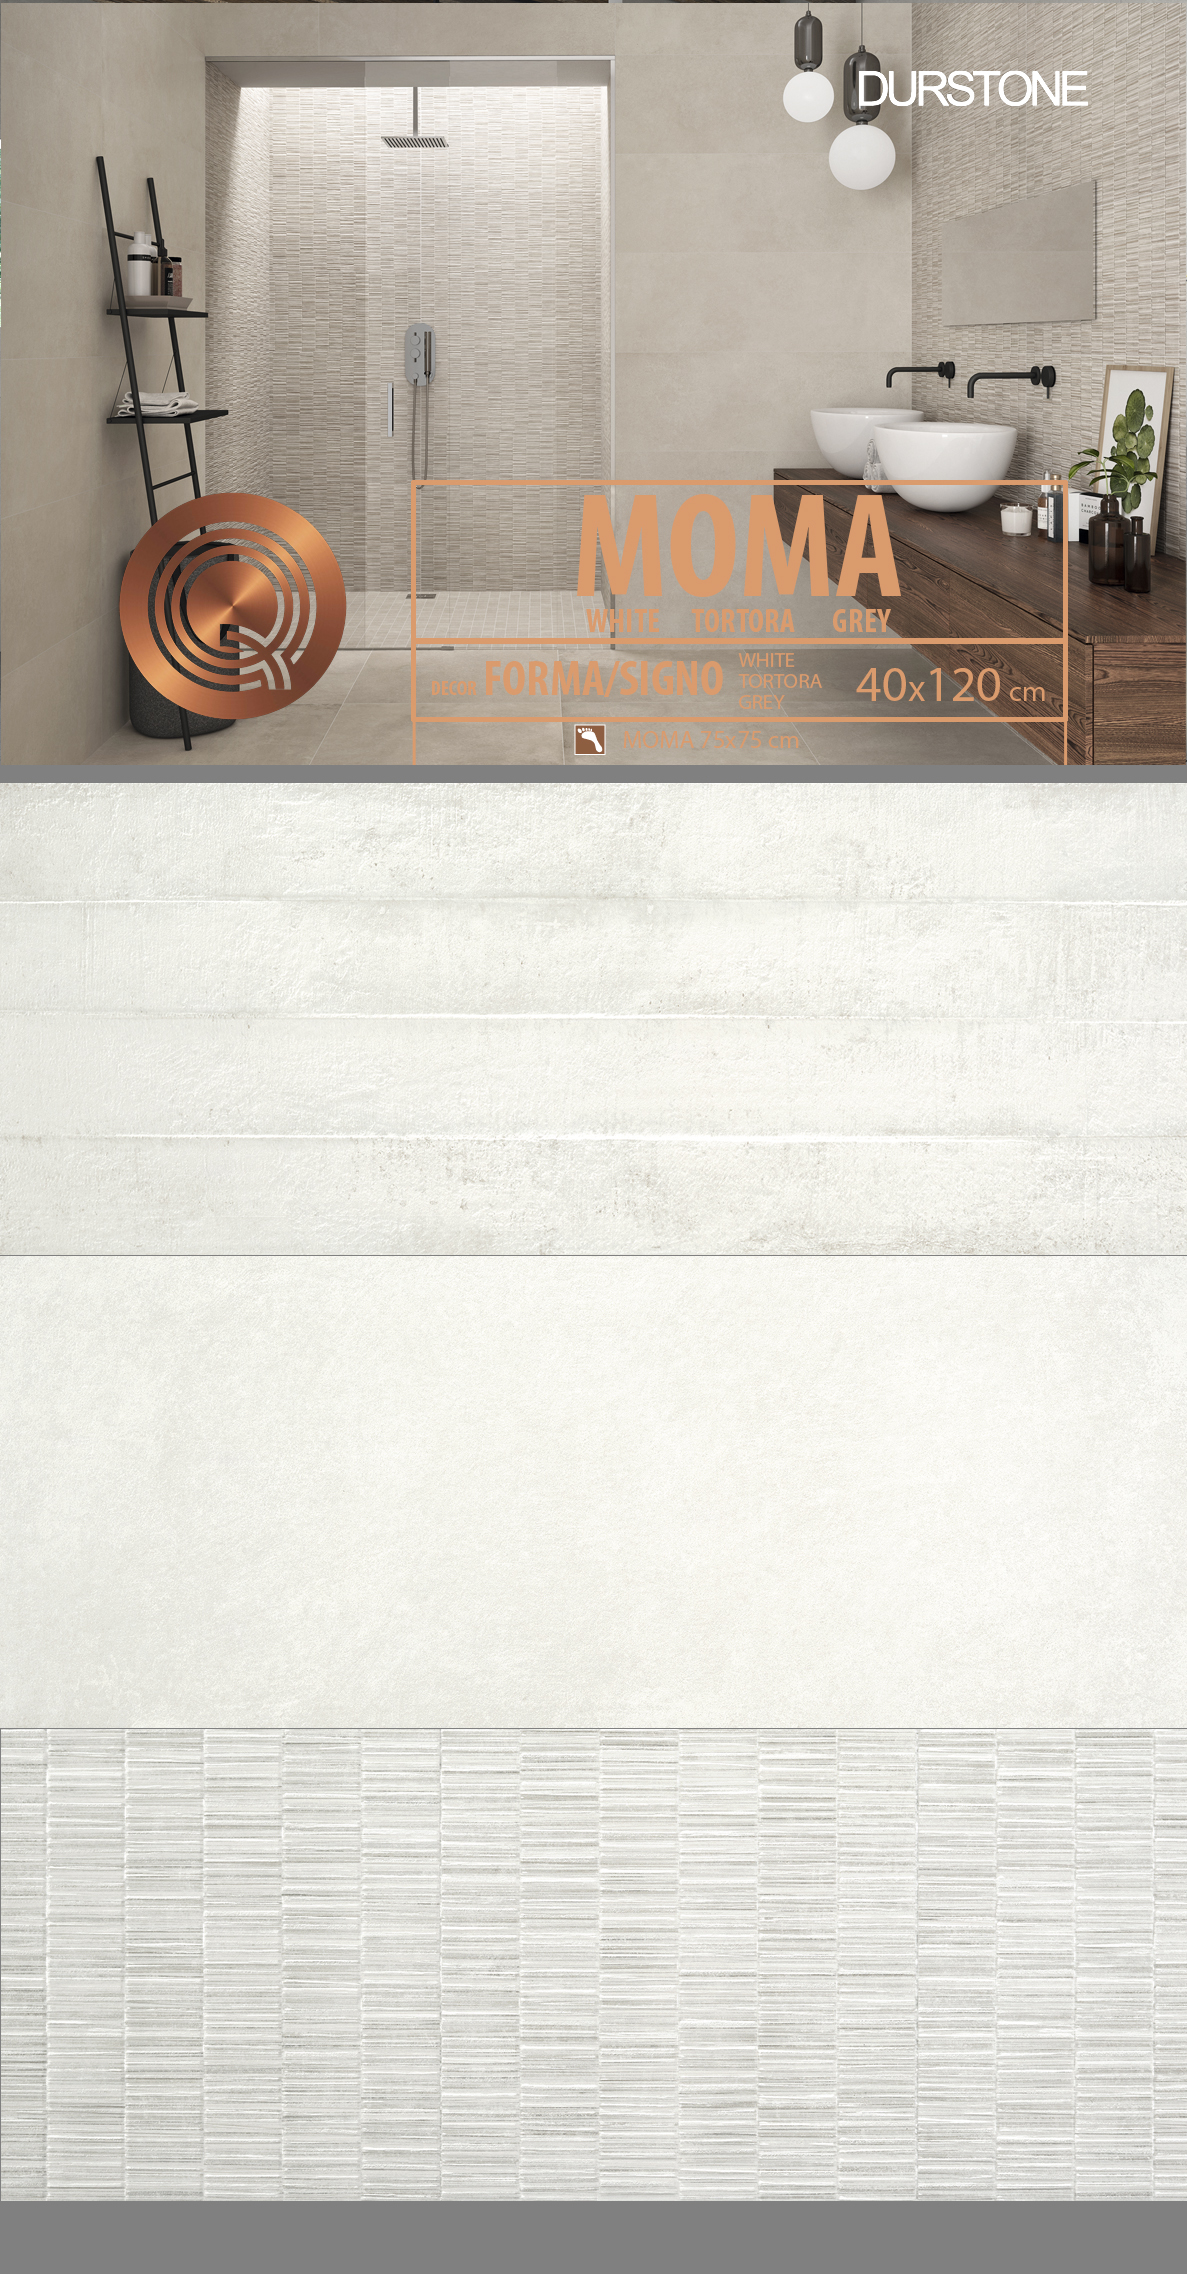 6033 RV PANEL MIX MOMA / FORMA / SIGNO WHITE Cod. 6033